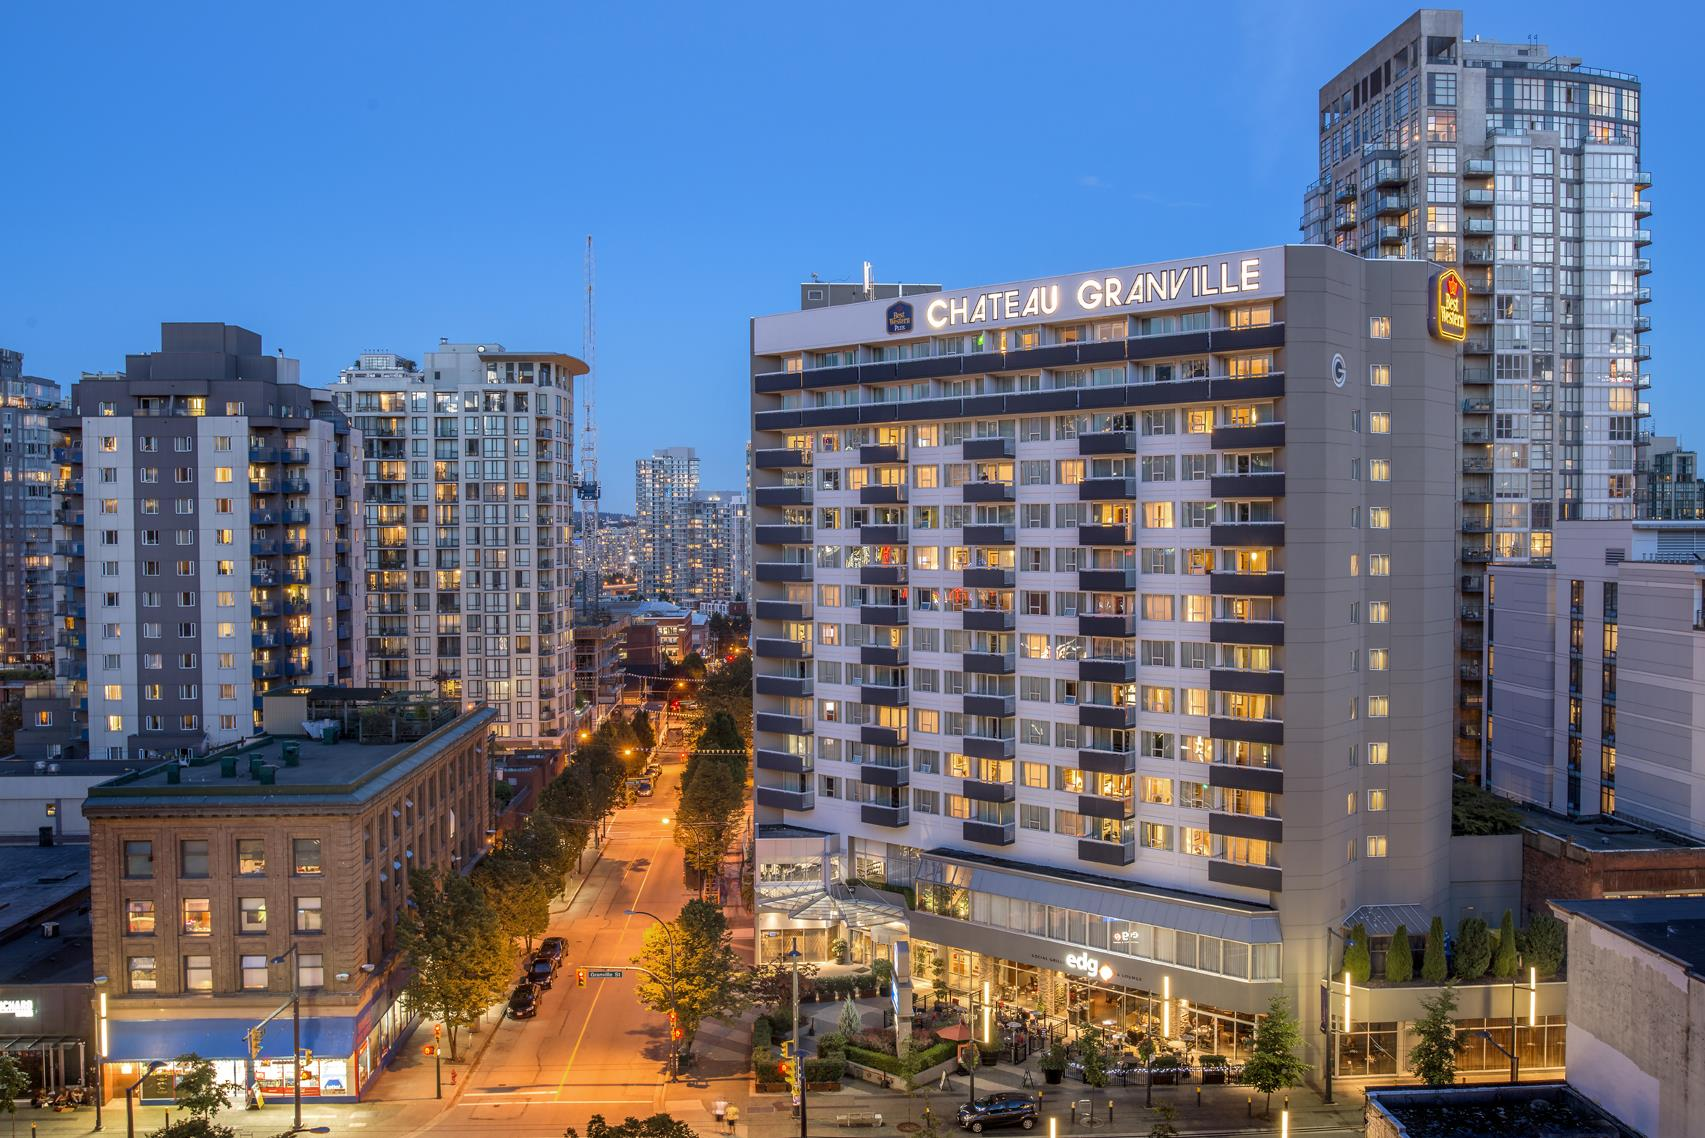 Best Western Plus Chateau Granville Hotel & Suites & Conference Ctr. in Vancouver: Hotel Exterior - Helmcken Street View